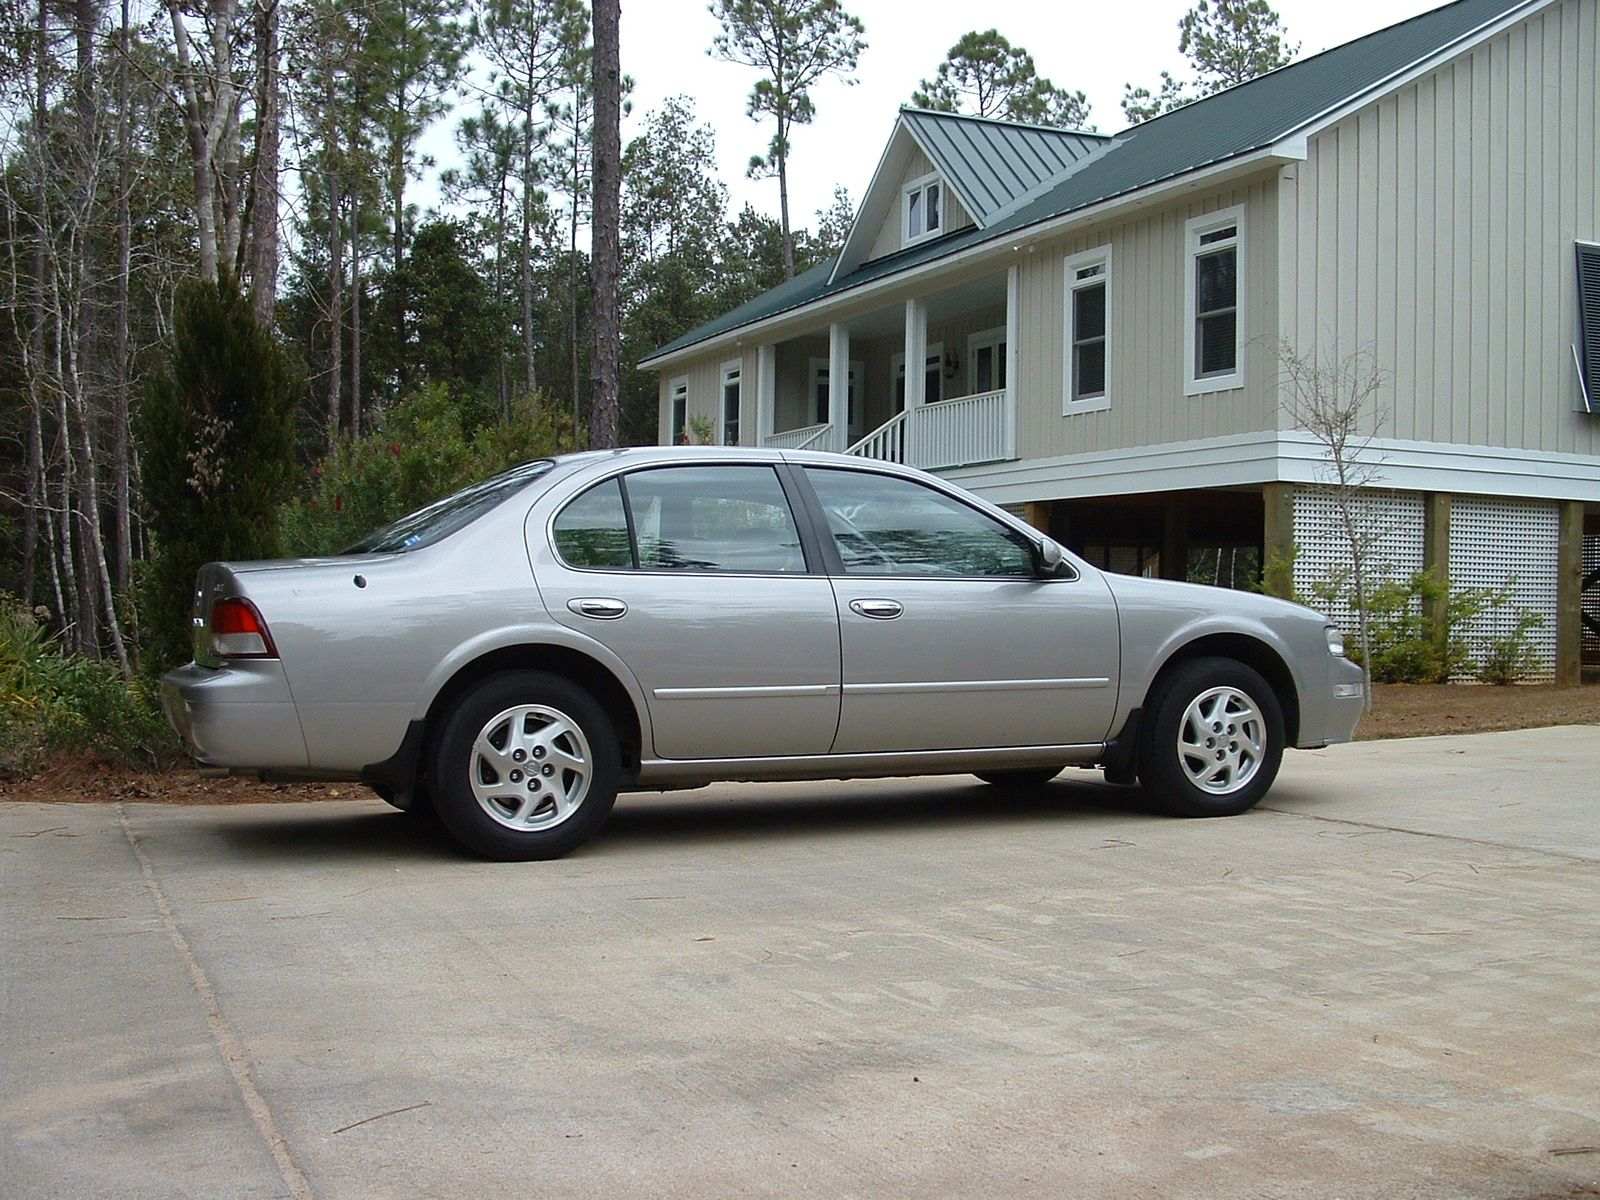 small resolution of 1999 nissan maxima this car was sporty and fully loaded i liked driving it